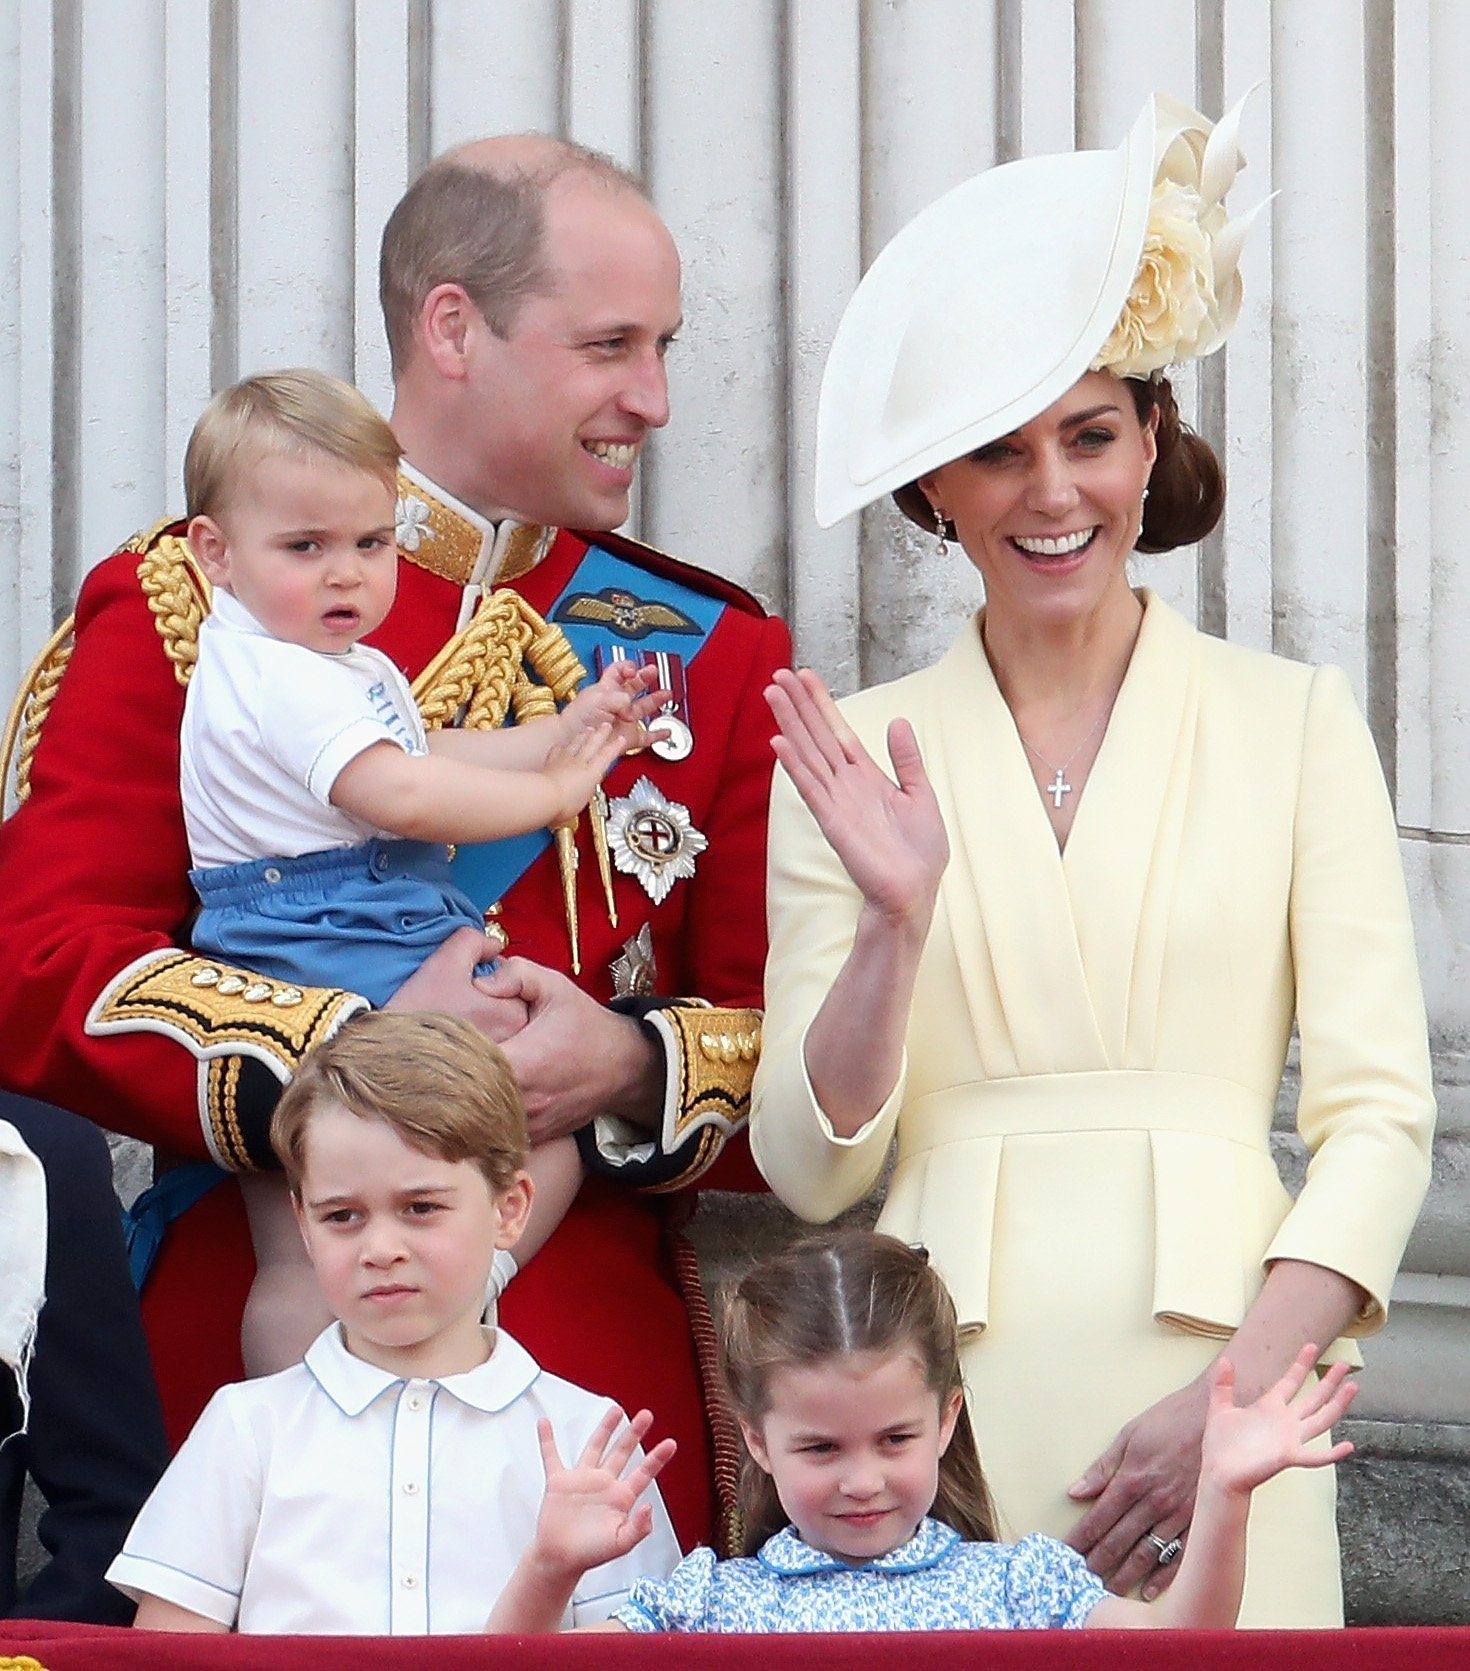 Prince William, Kate Middleton, Prince Louis, Prince George & Princess Charlotte on the balcony of Buckingham Palace during Trooping The Colour on June 8, 2019 in London, England. |Photo: Getty Images